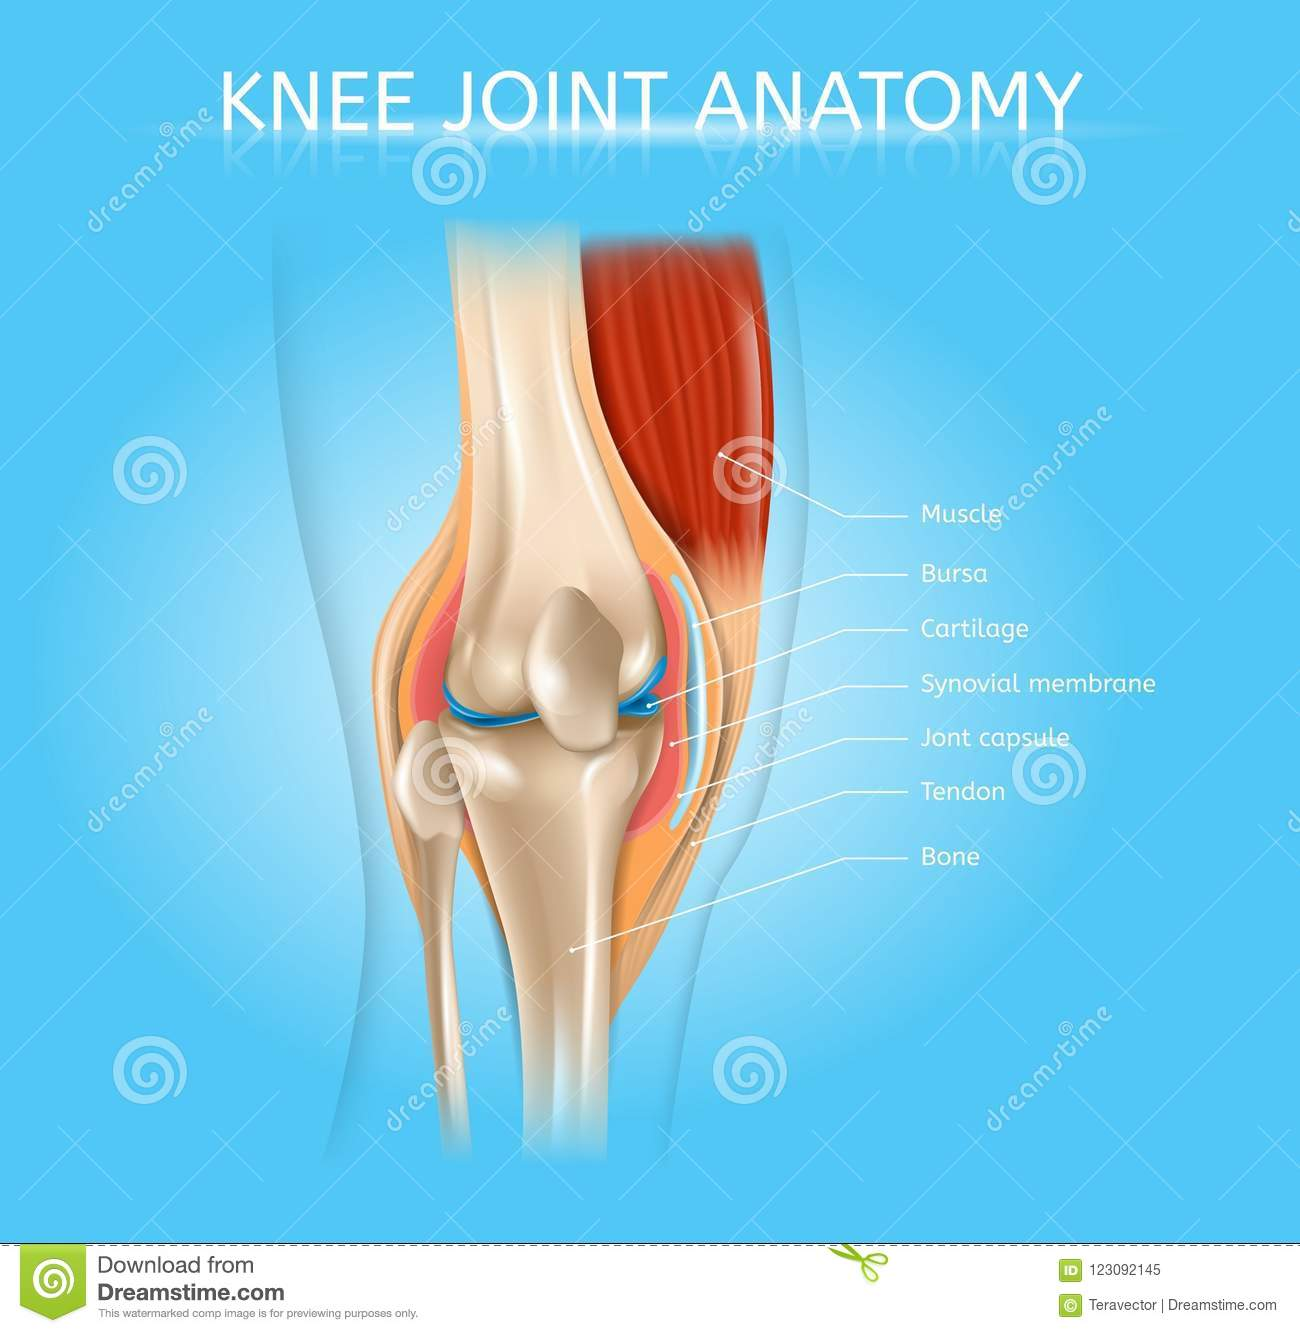 hight resolution of human knee joint anatomy realistic vector medical scheme with muscles bones joint capsule front view anatomical illustration human musculoskeletal system